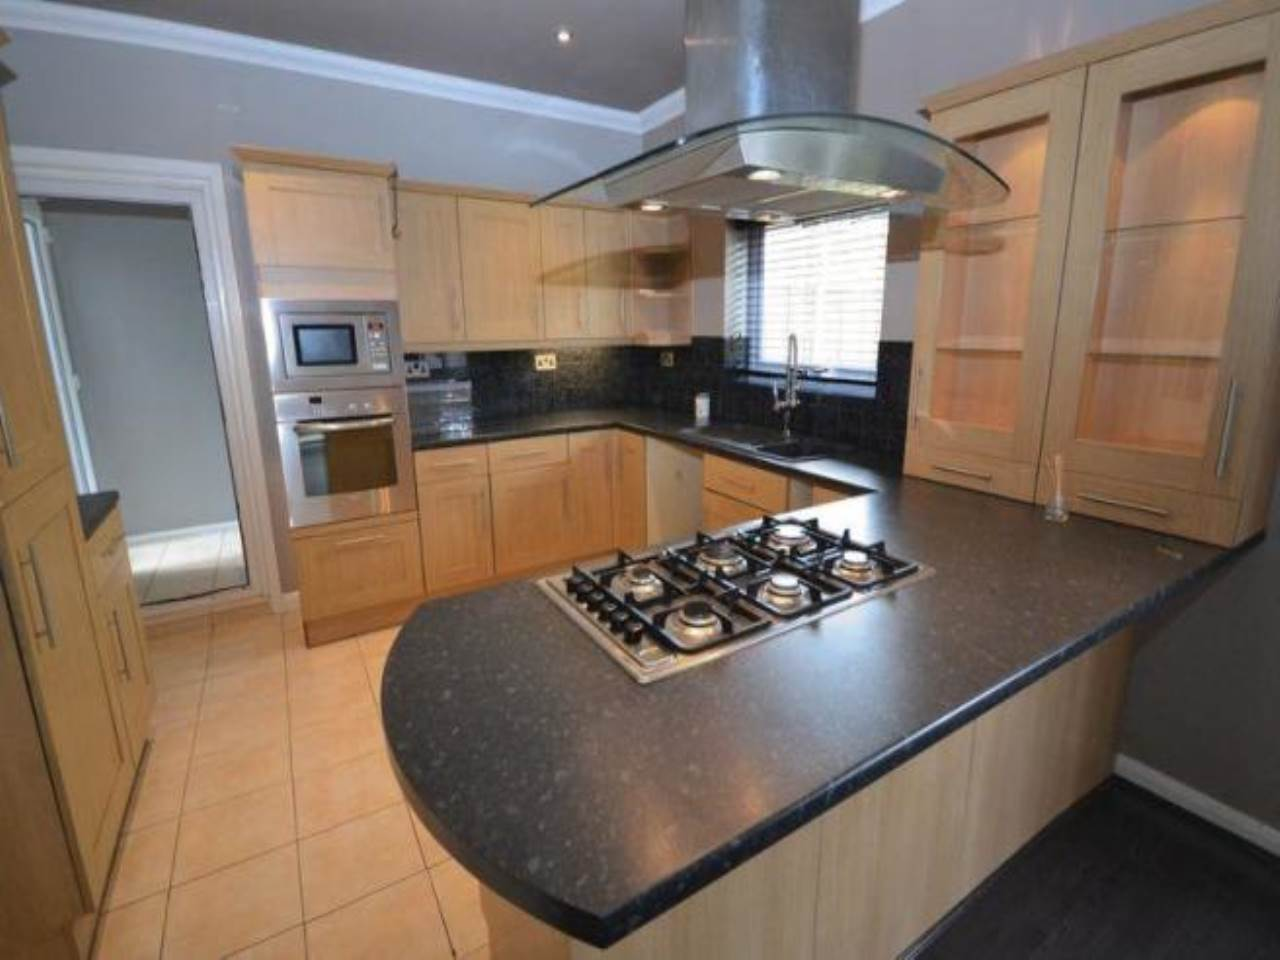 4 bed house for sale in Cowper Road, Moordown 3